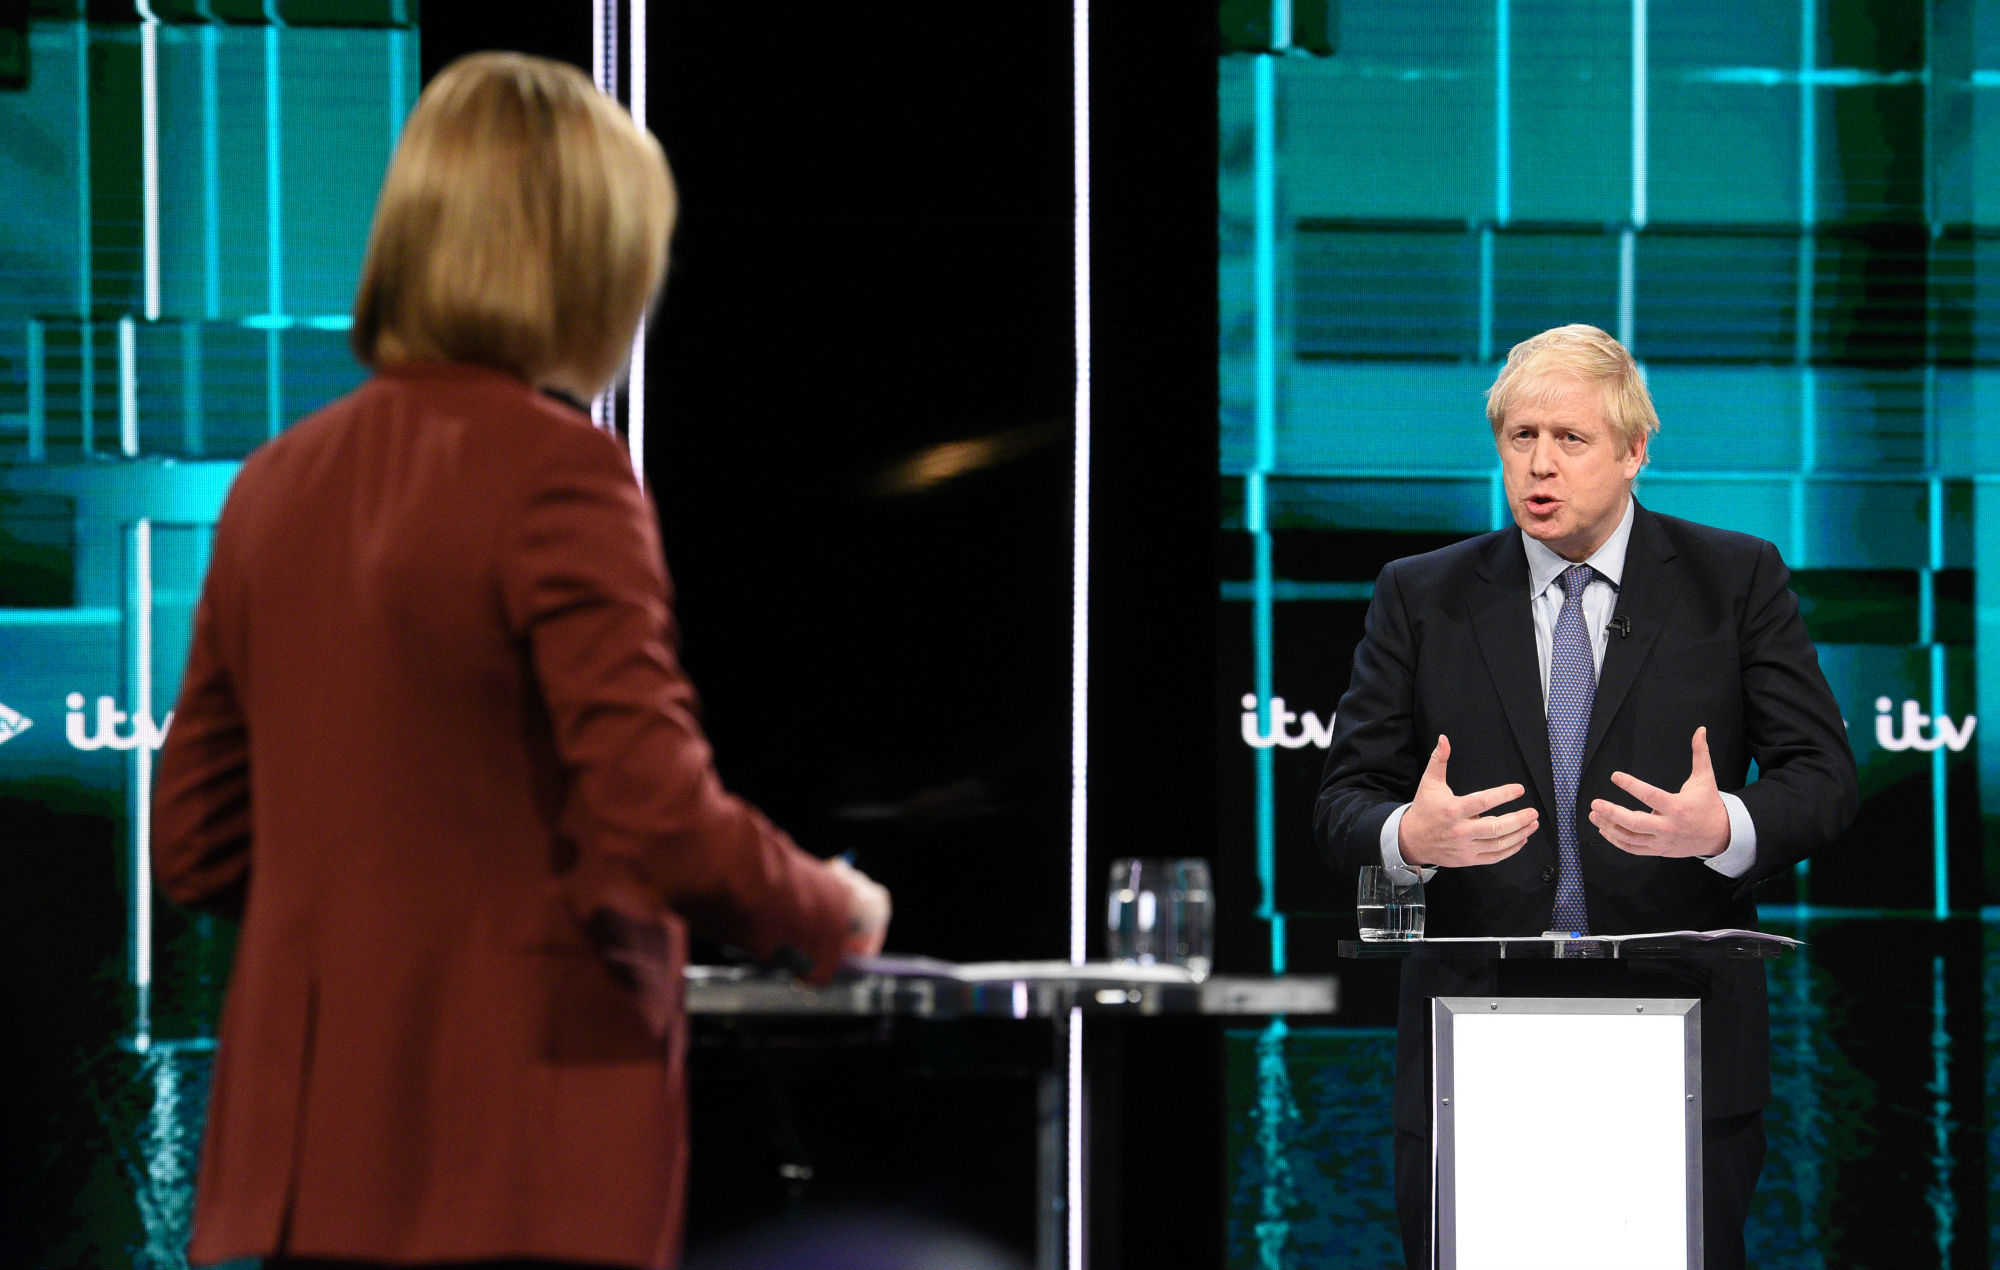 The leaders' debate was the most depressing televisual event since the '…Thrones' finale